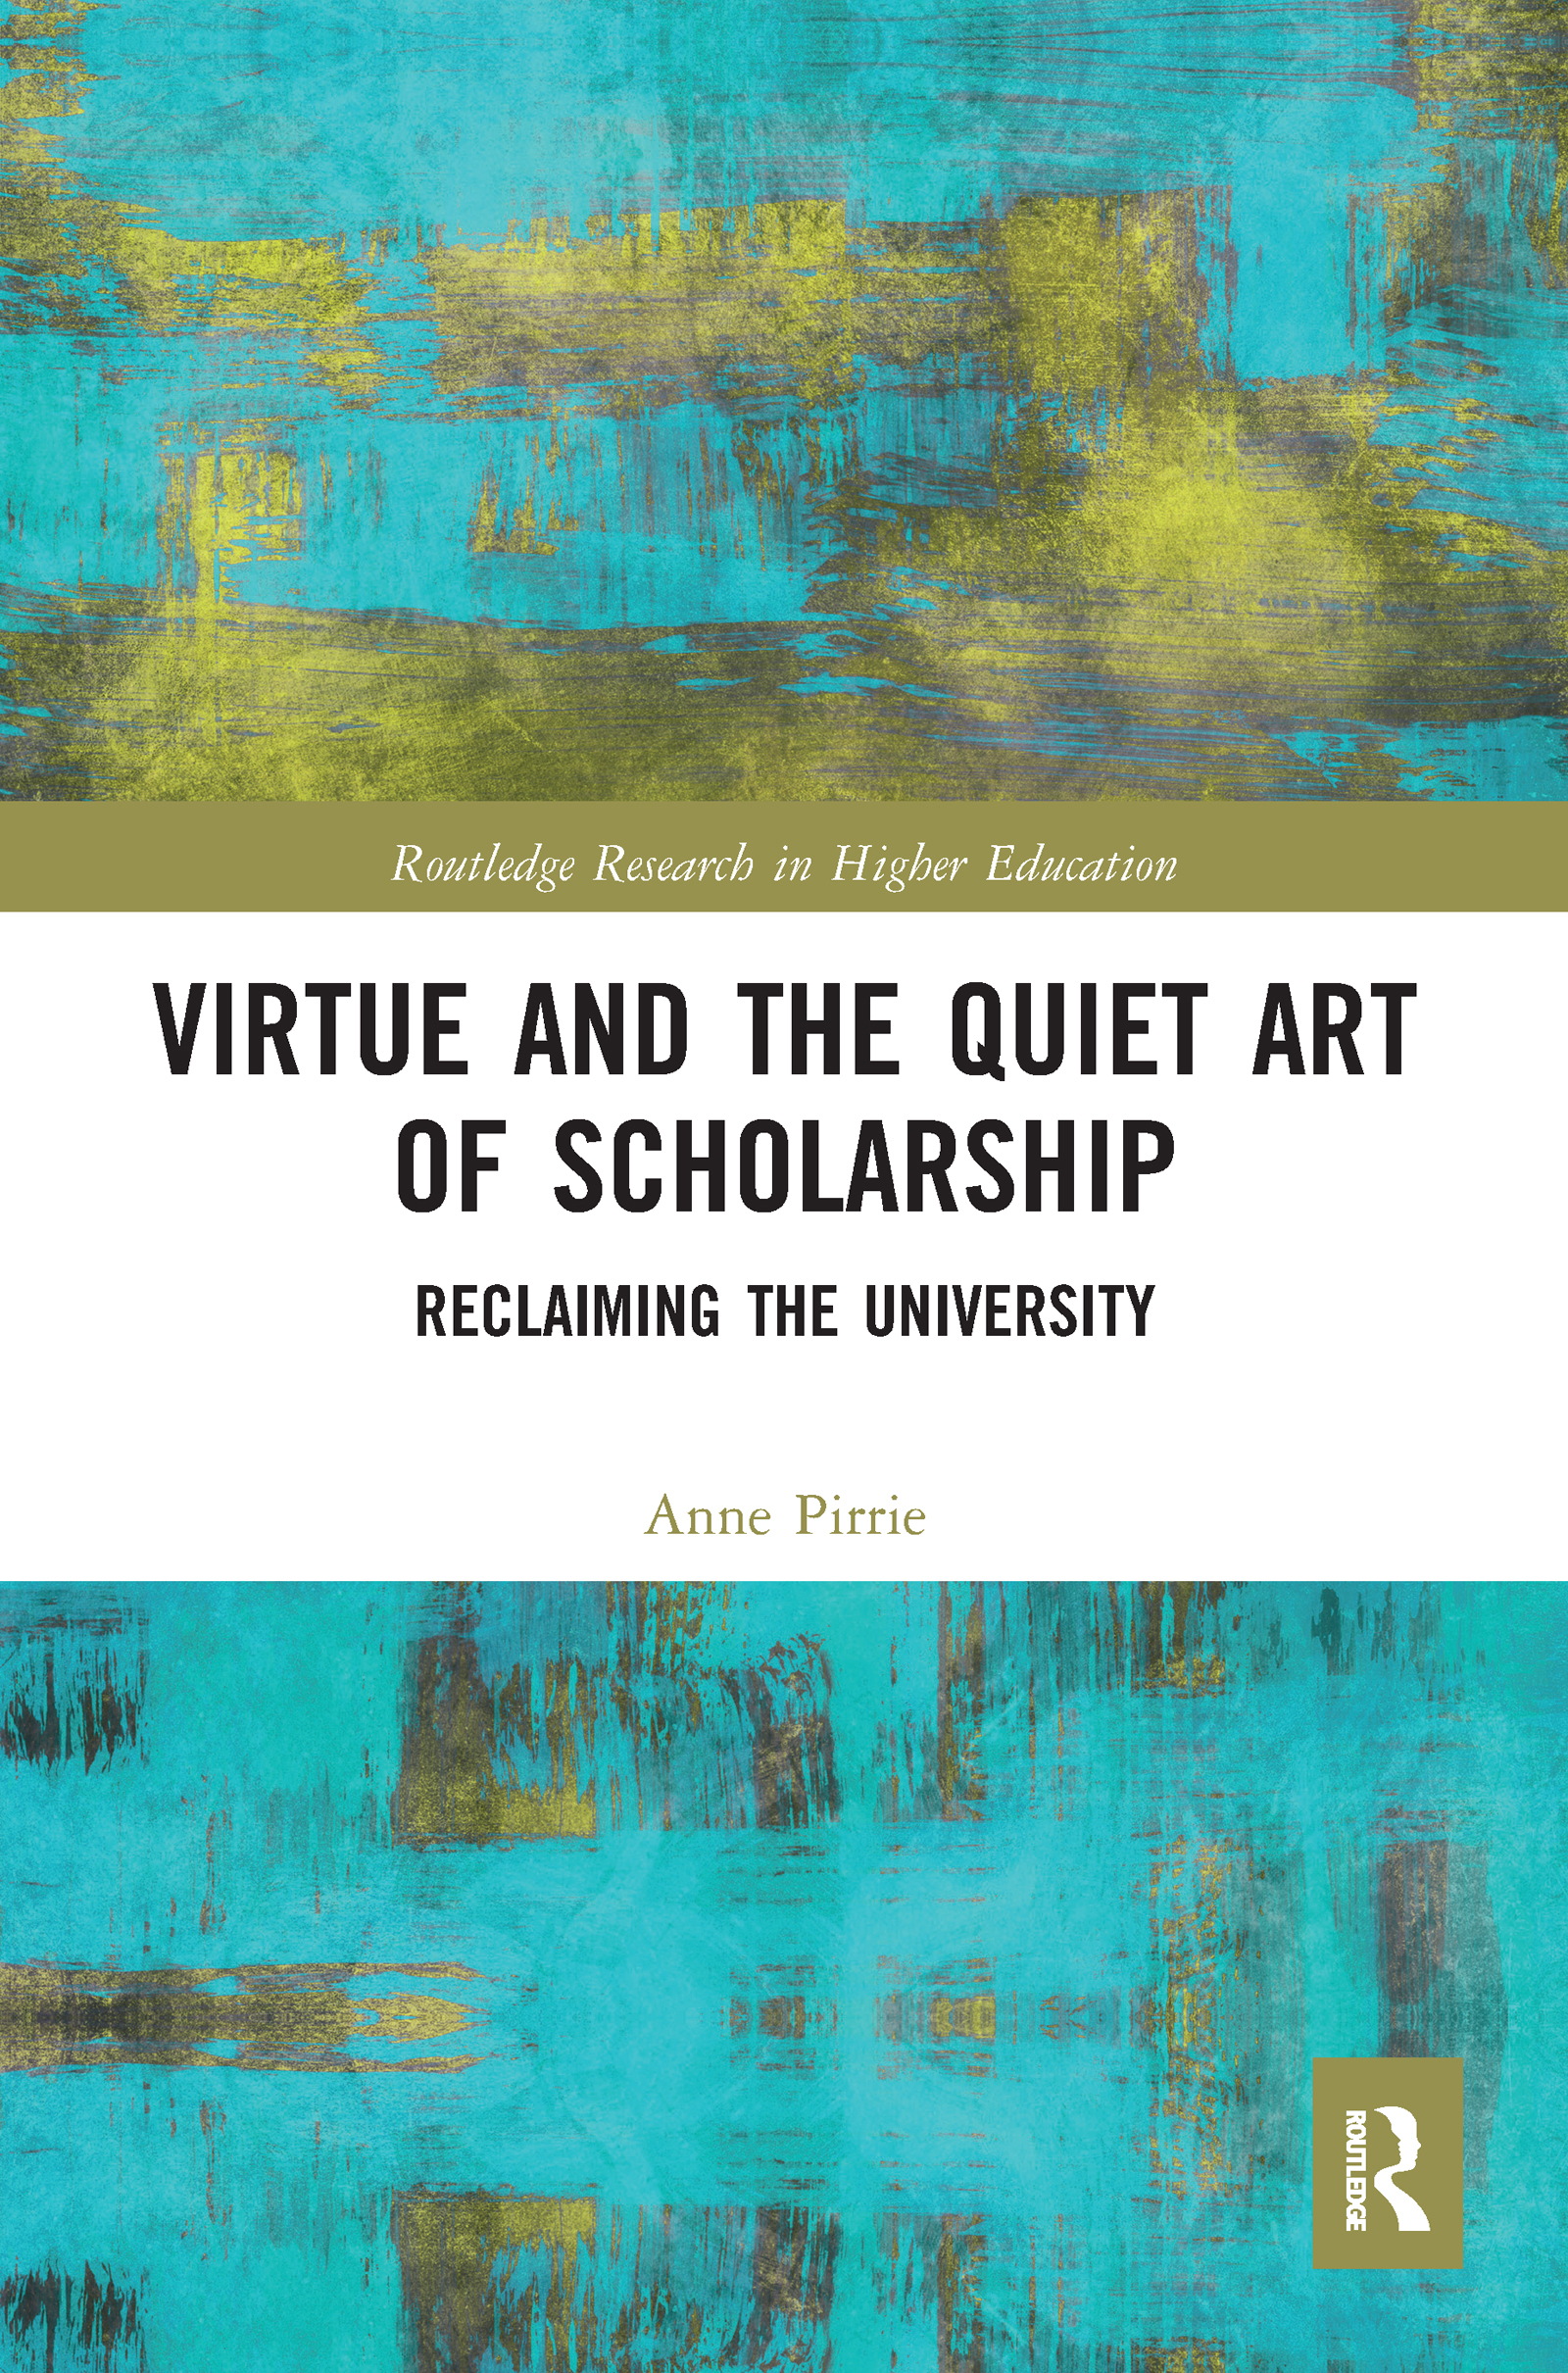 Virtue and the Quiet Art of Scholarship